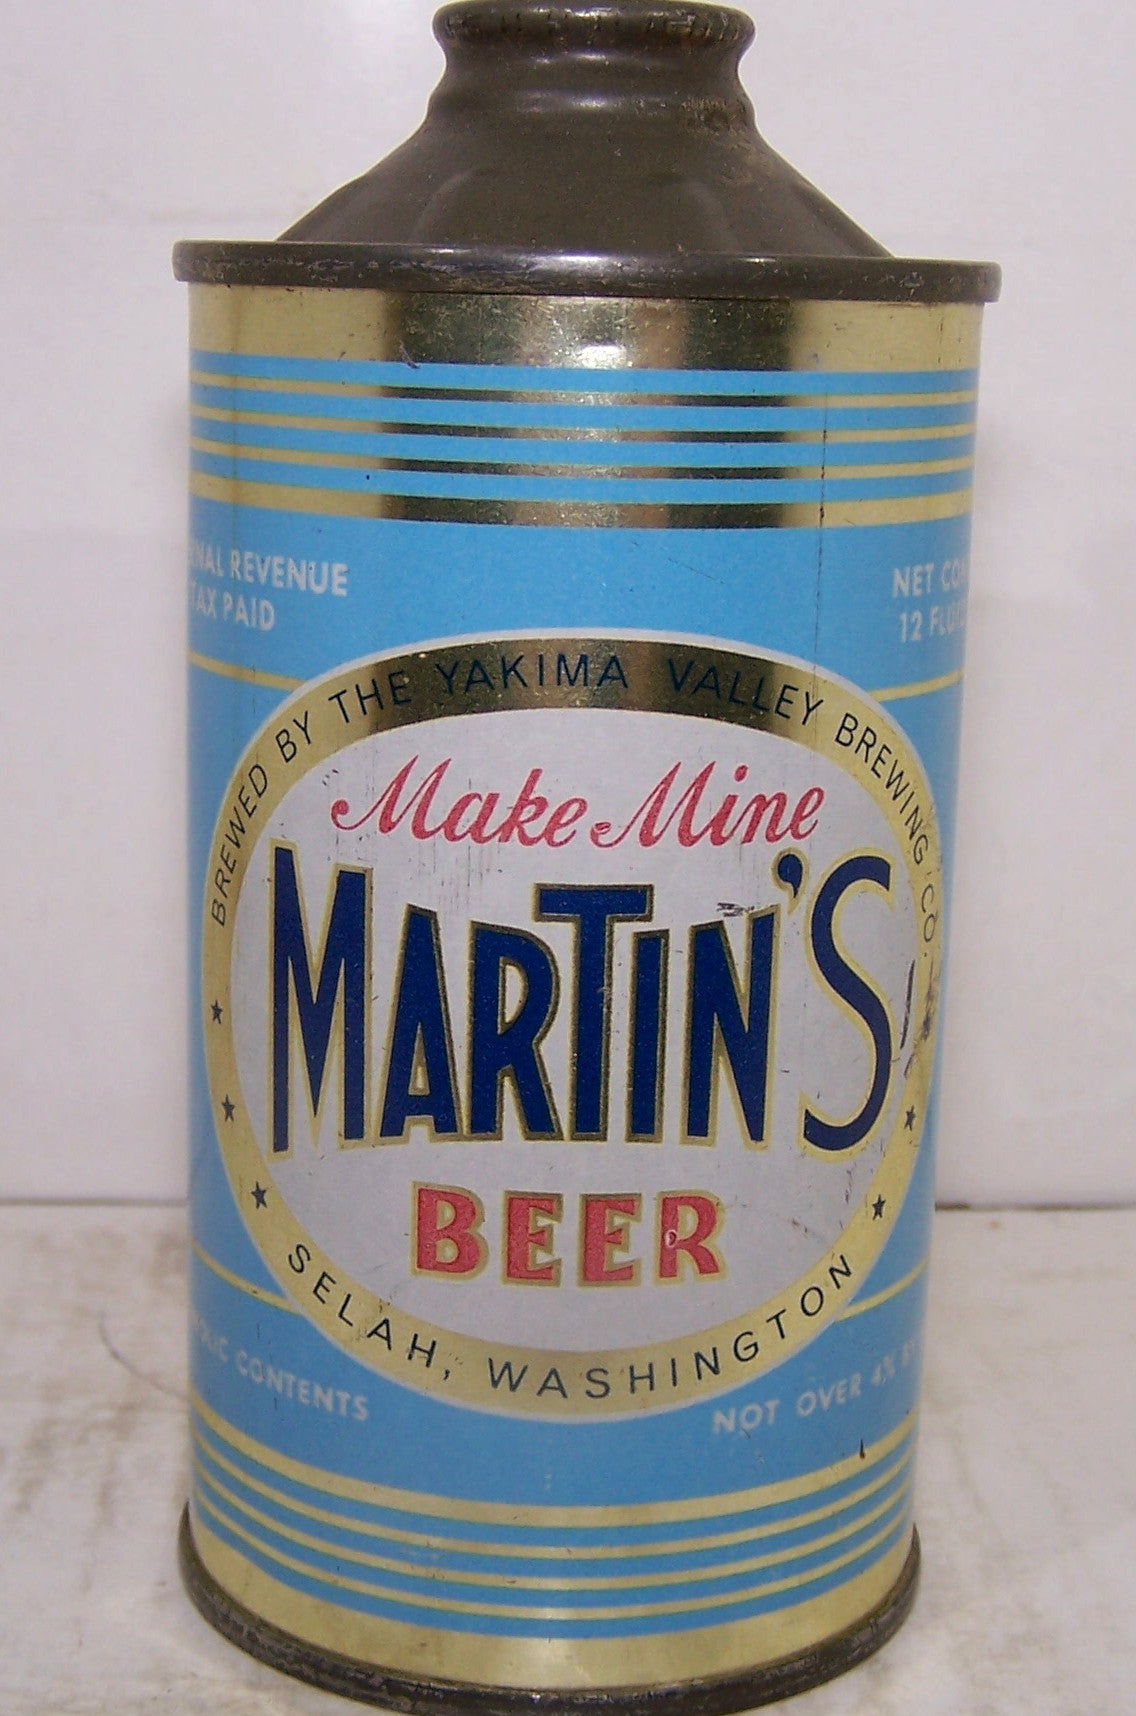 Martin's Beer Low Profile, USBC 173-13, Grade 1 to 1/1+ Sold on 8/16/15